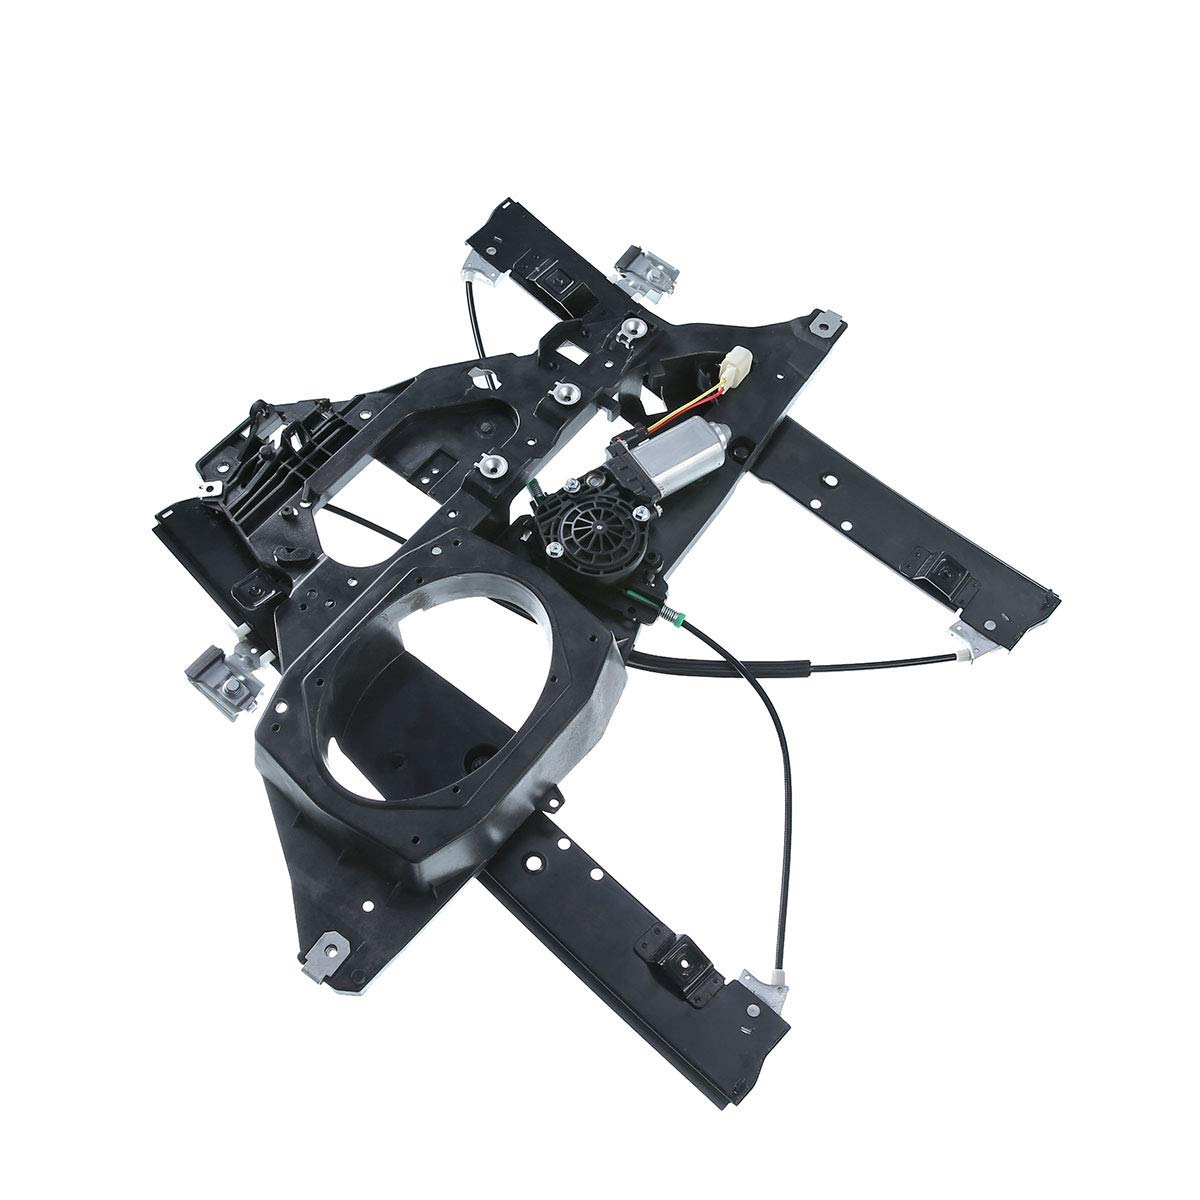 A-Premium Power Window Regulator with Motor and Panel for ford Expedition Lincoln Navigator 2007-2017 Front Right Passenger Side (with 2 Prongs Plug) by A-premium